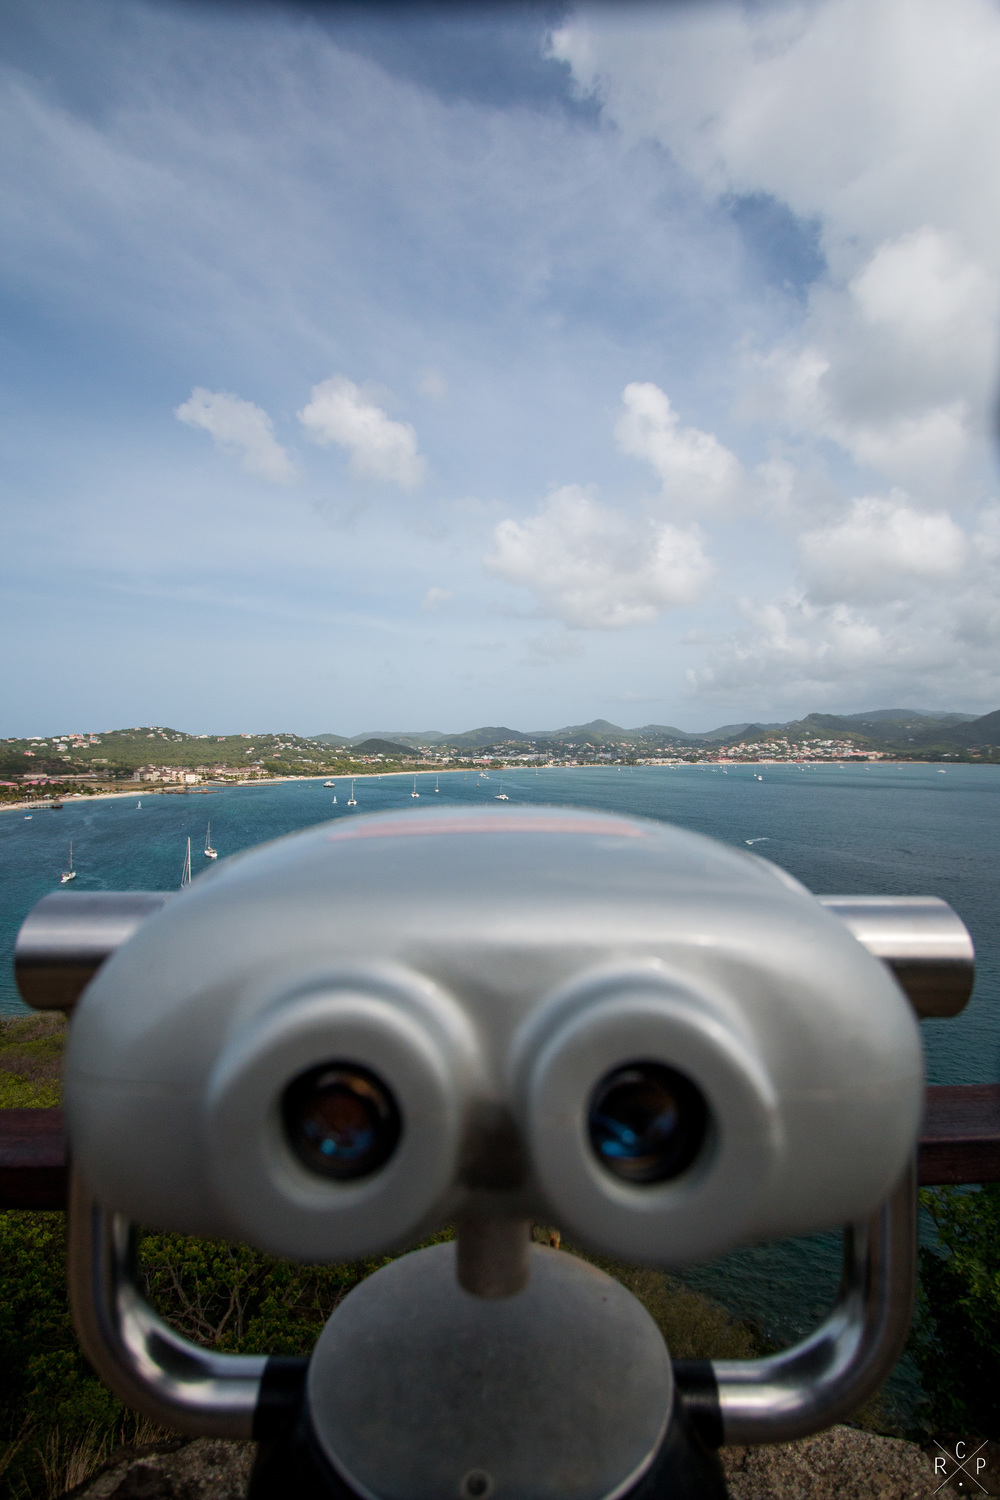 Looking Out 2 - Pigeon Island, Saint Lucia 29/04/2016